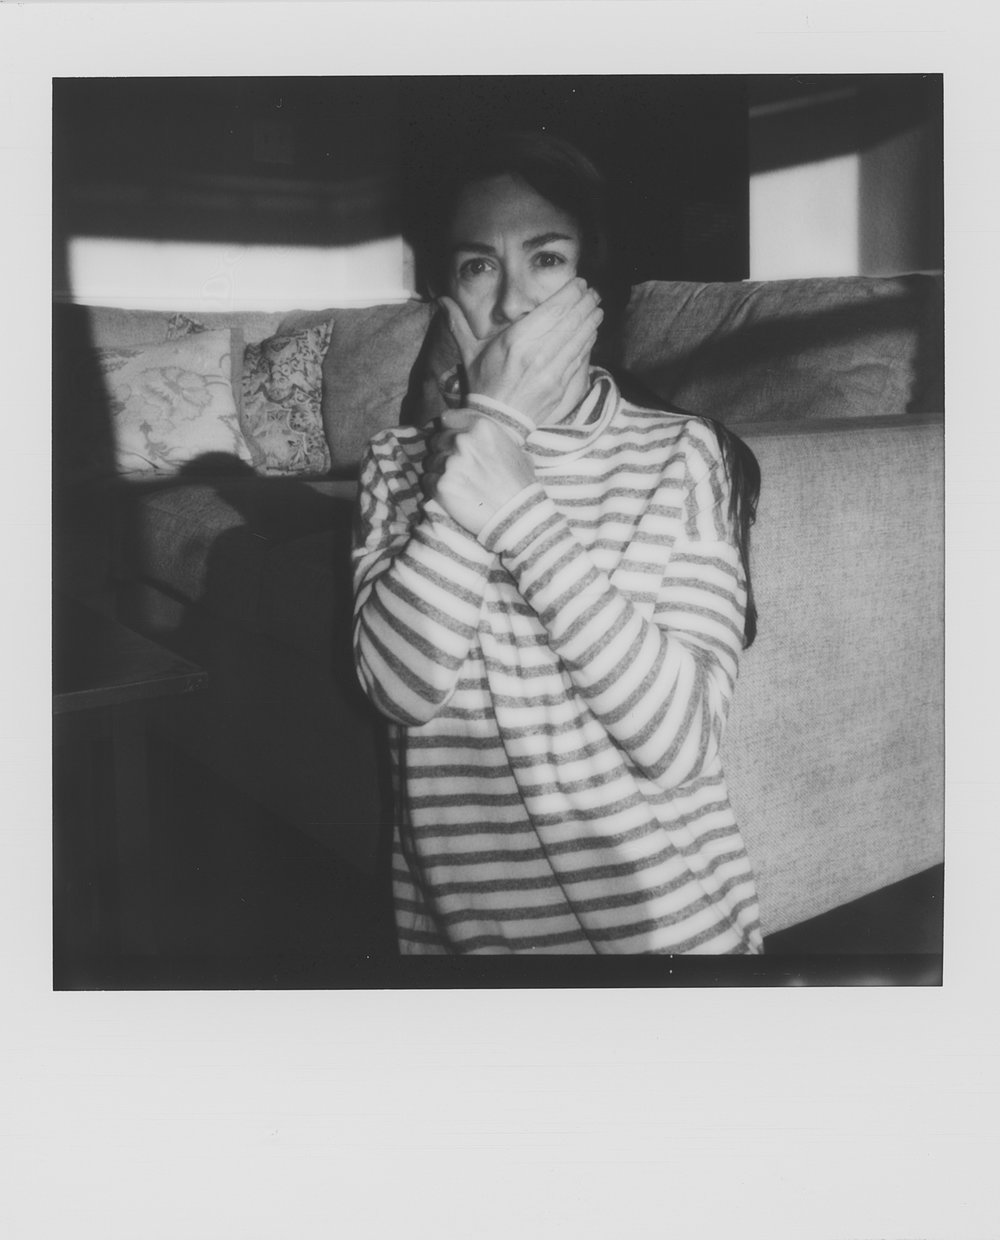 41 polaroids (1 of 2).jpg